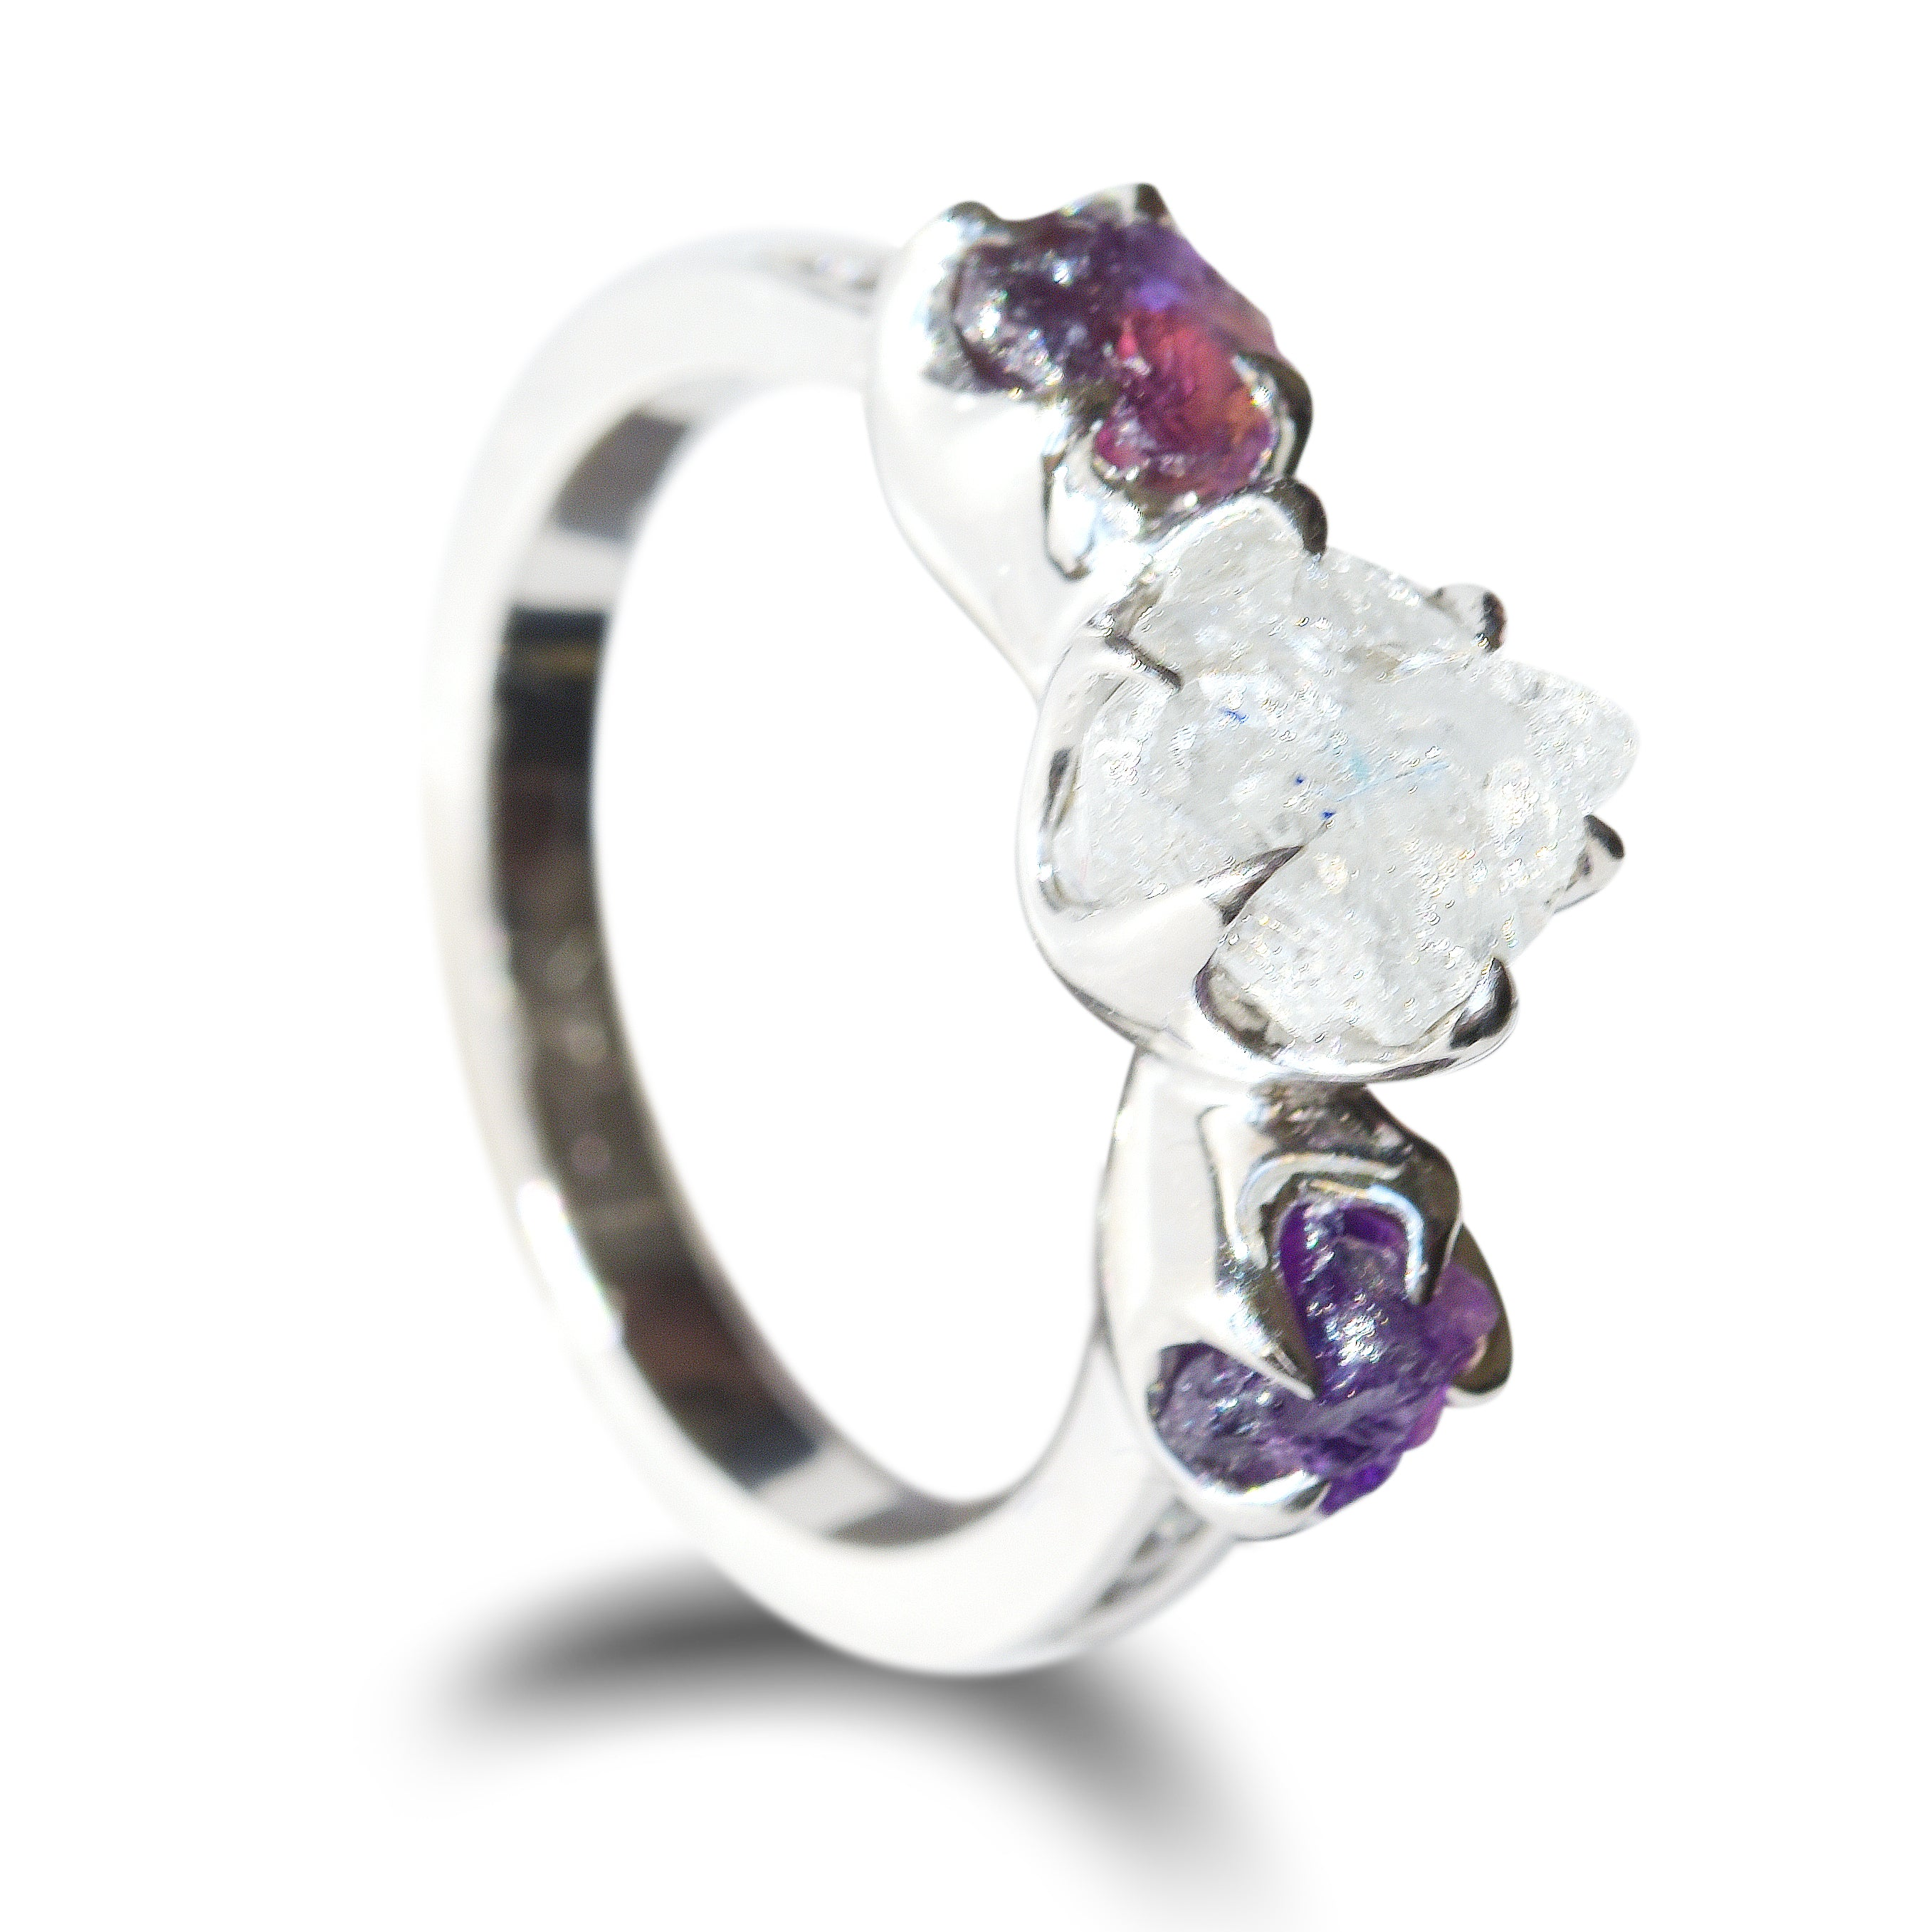 Stav Ring - A three-stone raw diamond and raw gemstone ring with conflict free diamond channel band